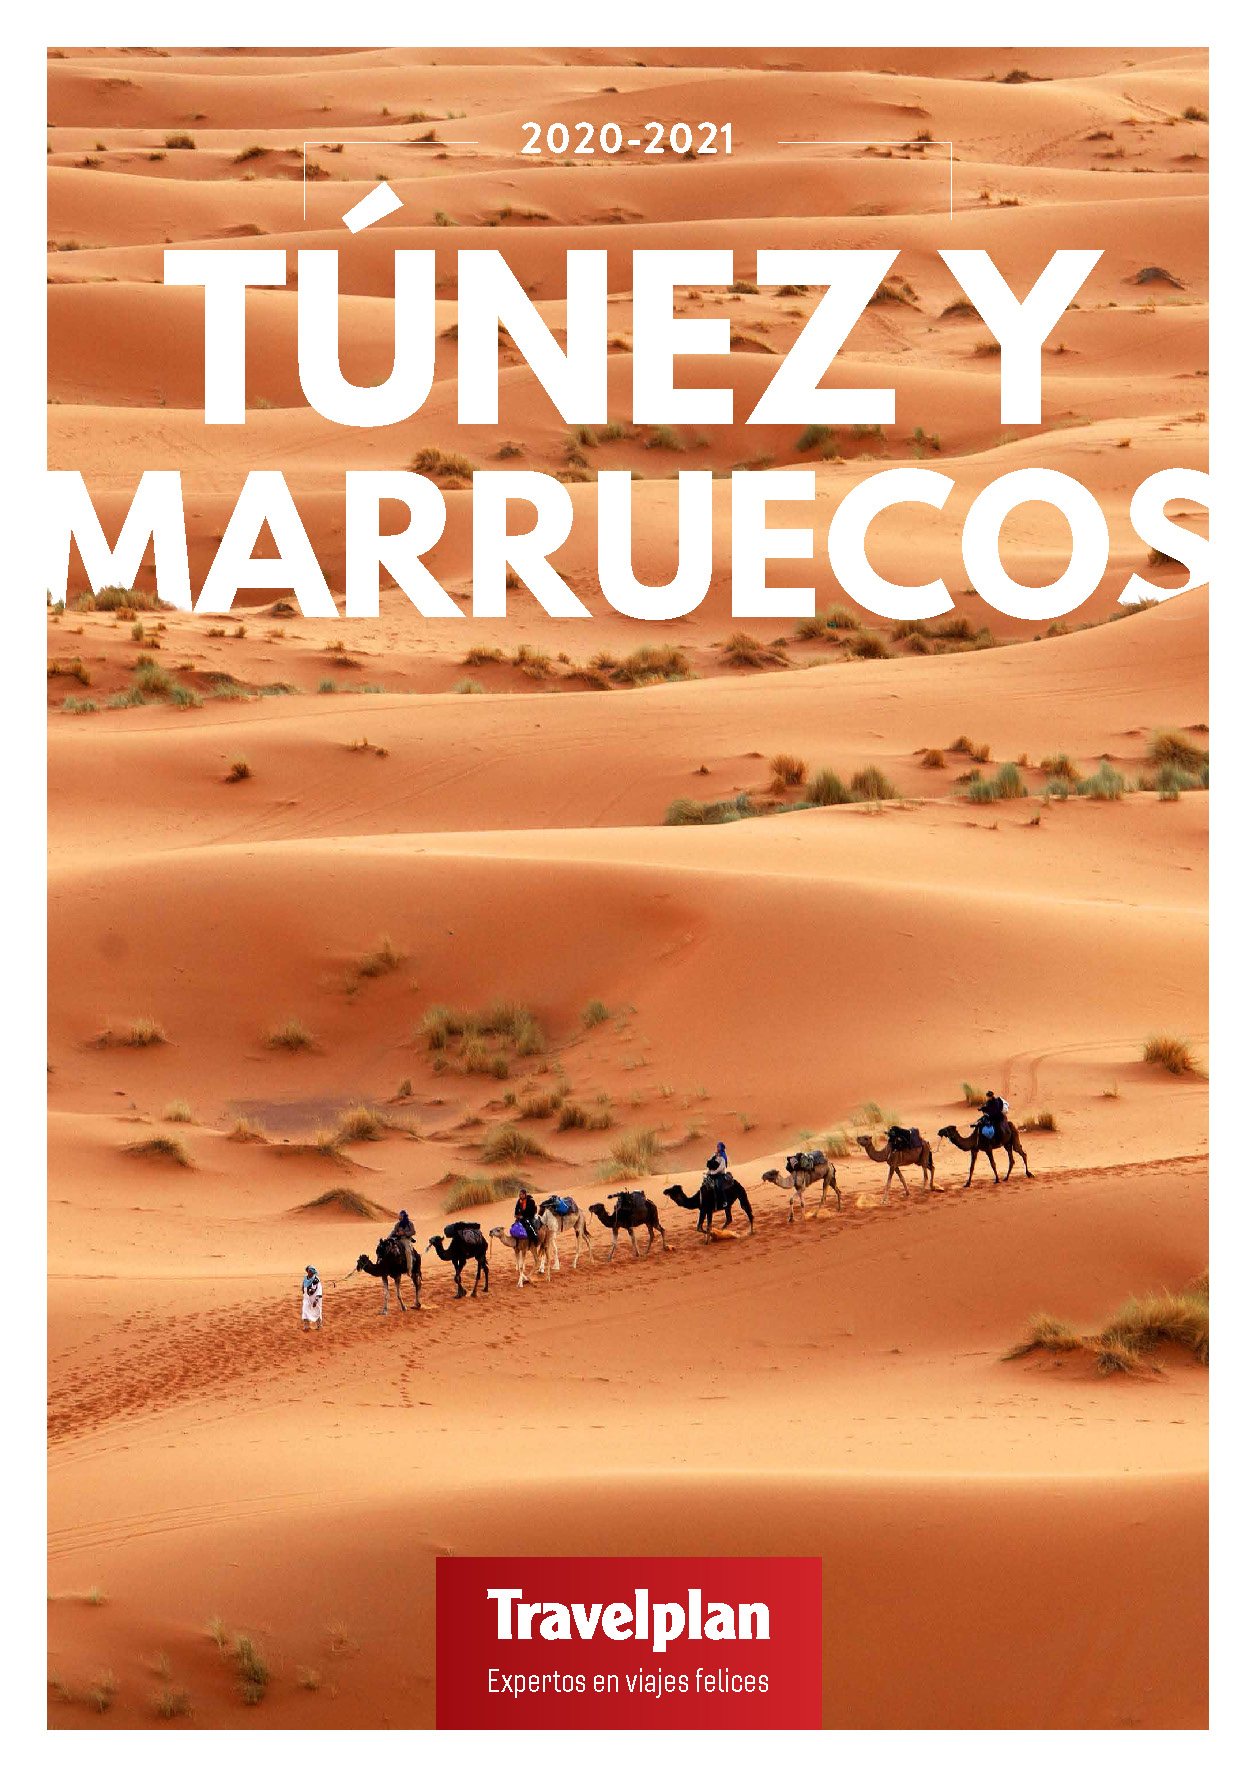 Catalogo Travelplan Tunez y Marruecos 2020-2021